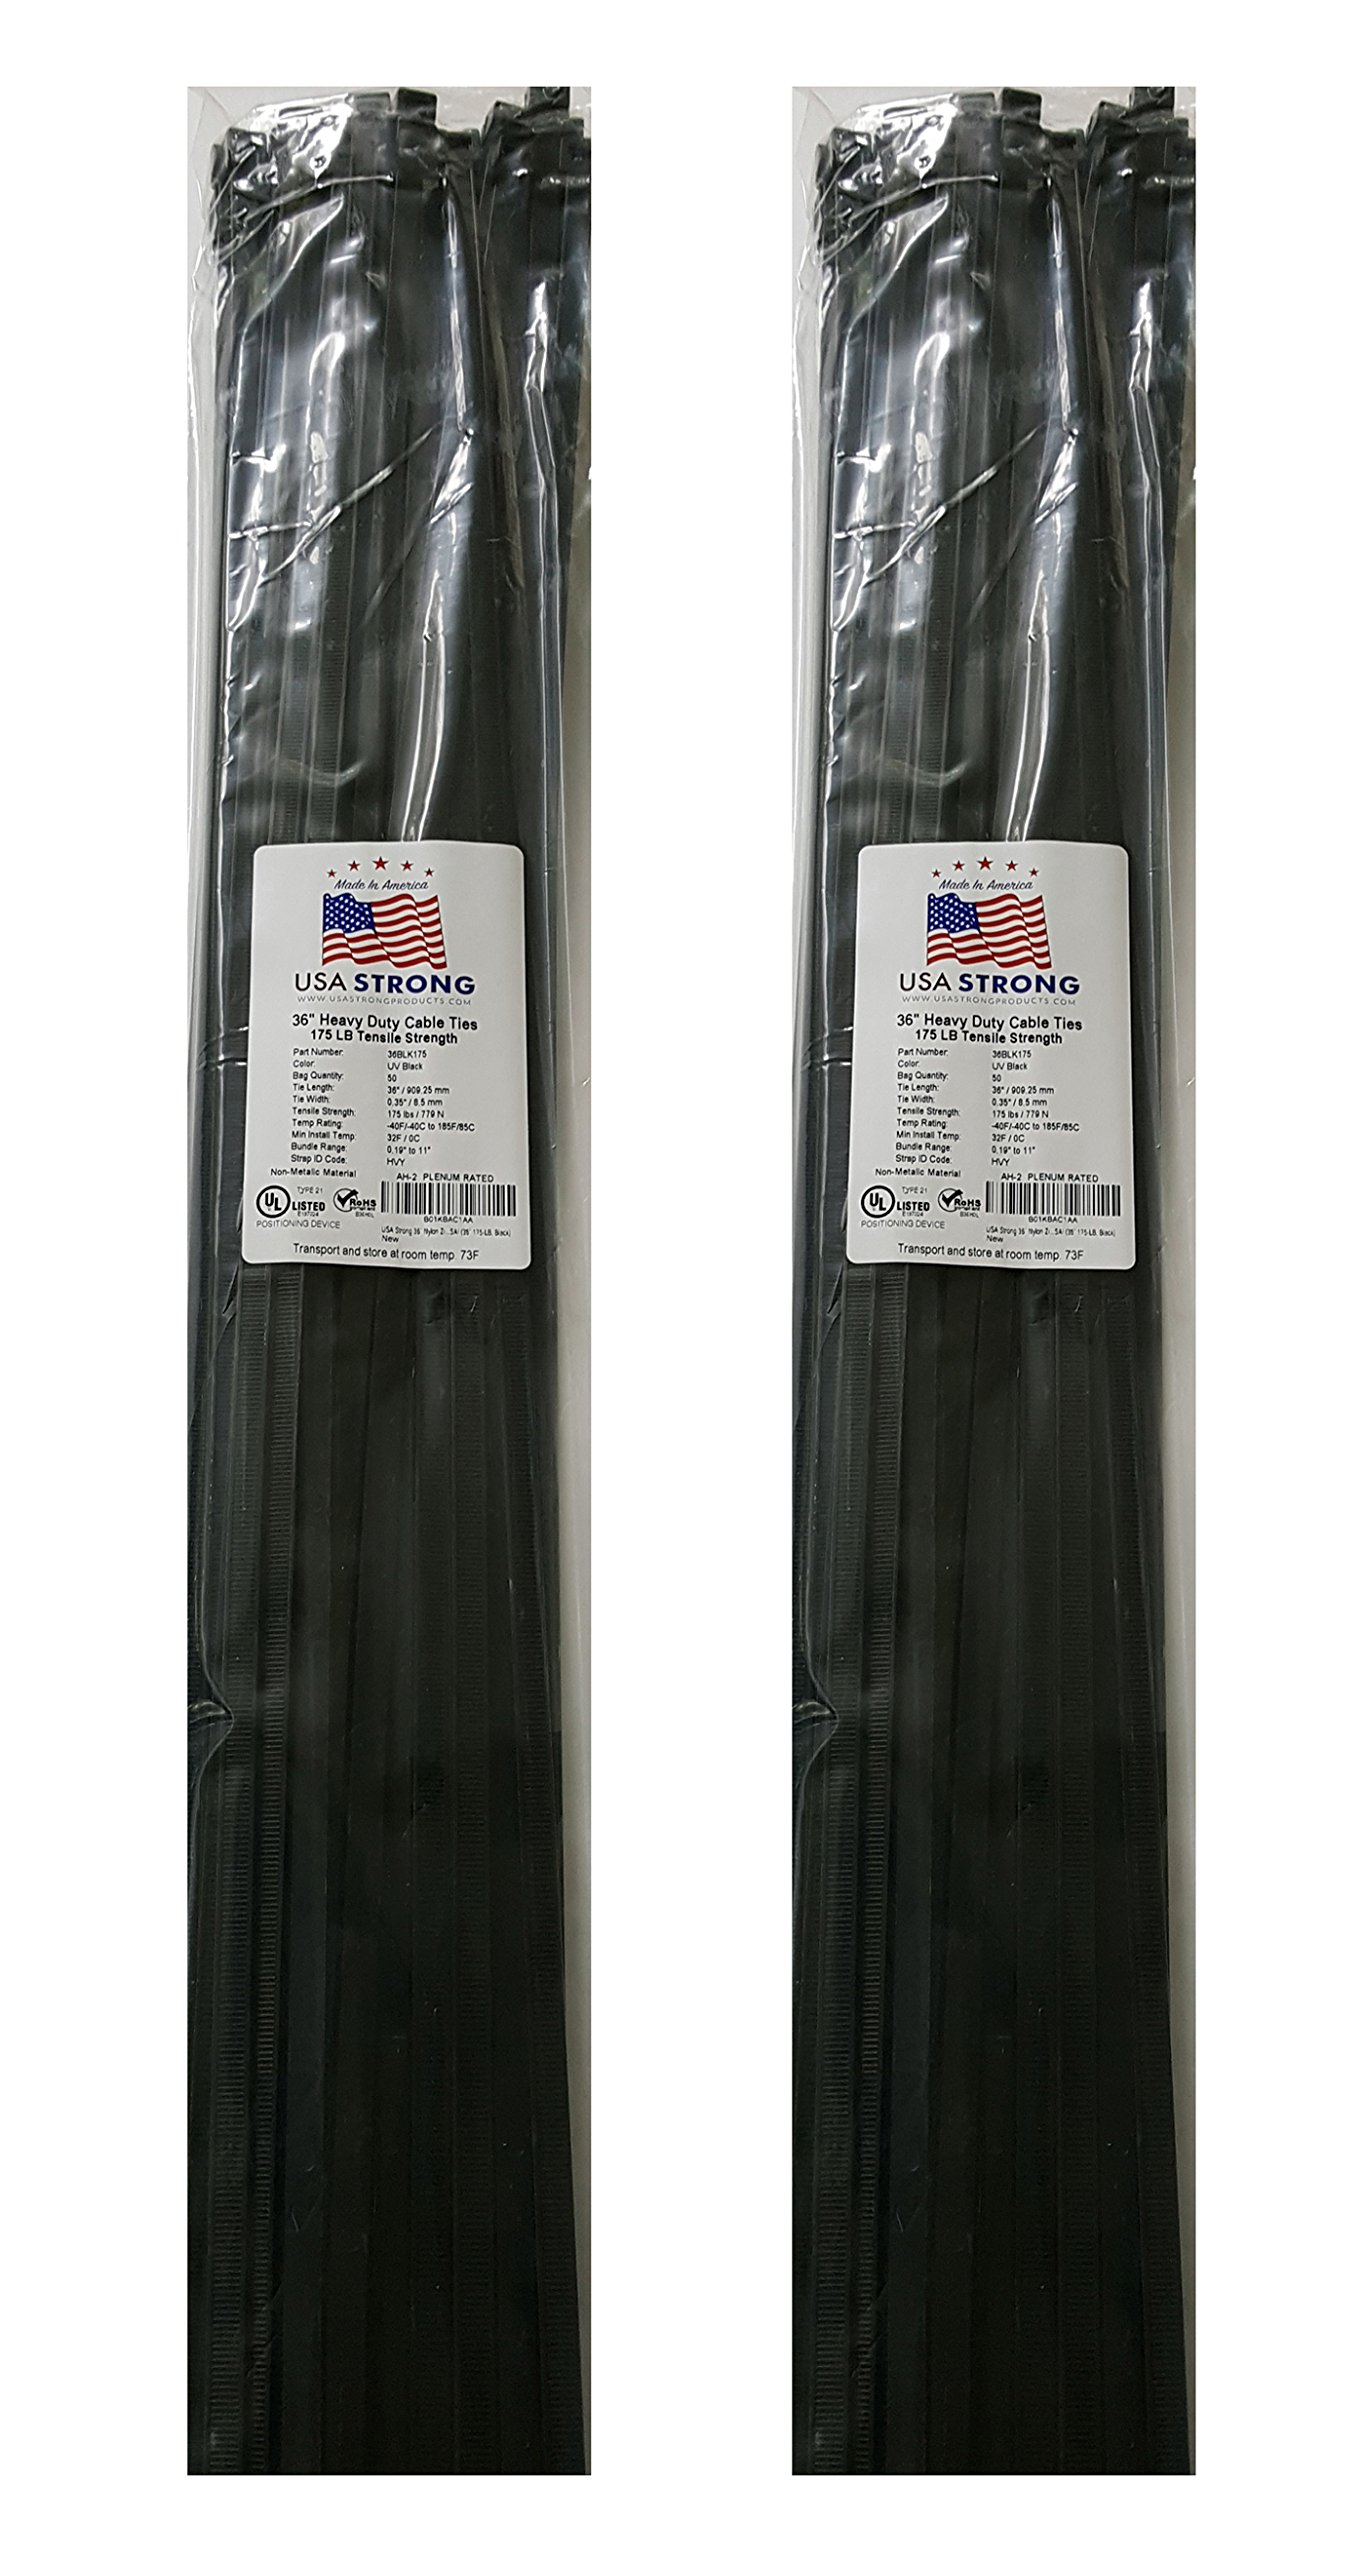 Extra Heavy Duty Cable Ties. Large Nylon Industrial Grade 175 LB Tensile Strength. Premium Zip Ties by USA Strong Products. 50 Pack or Bulk Wholesale (36 Inch (2X50 Packs), Black)